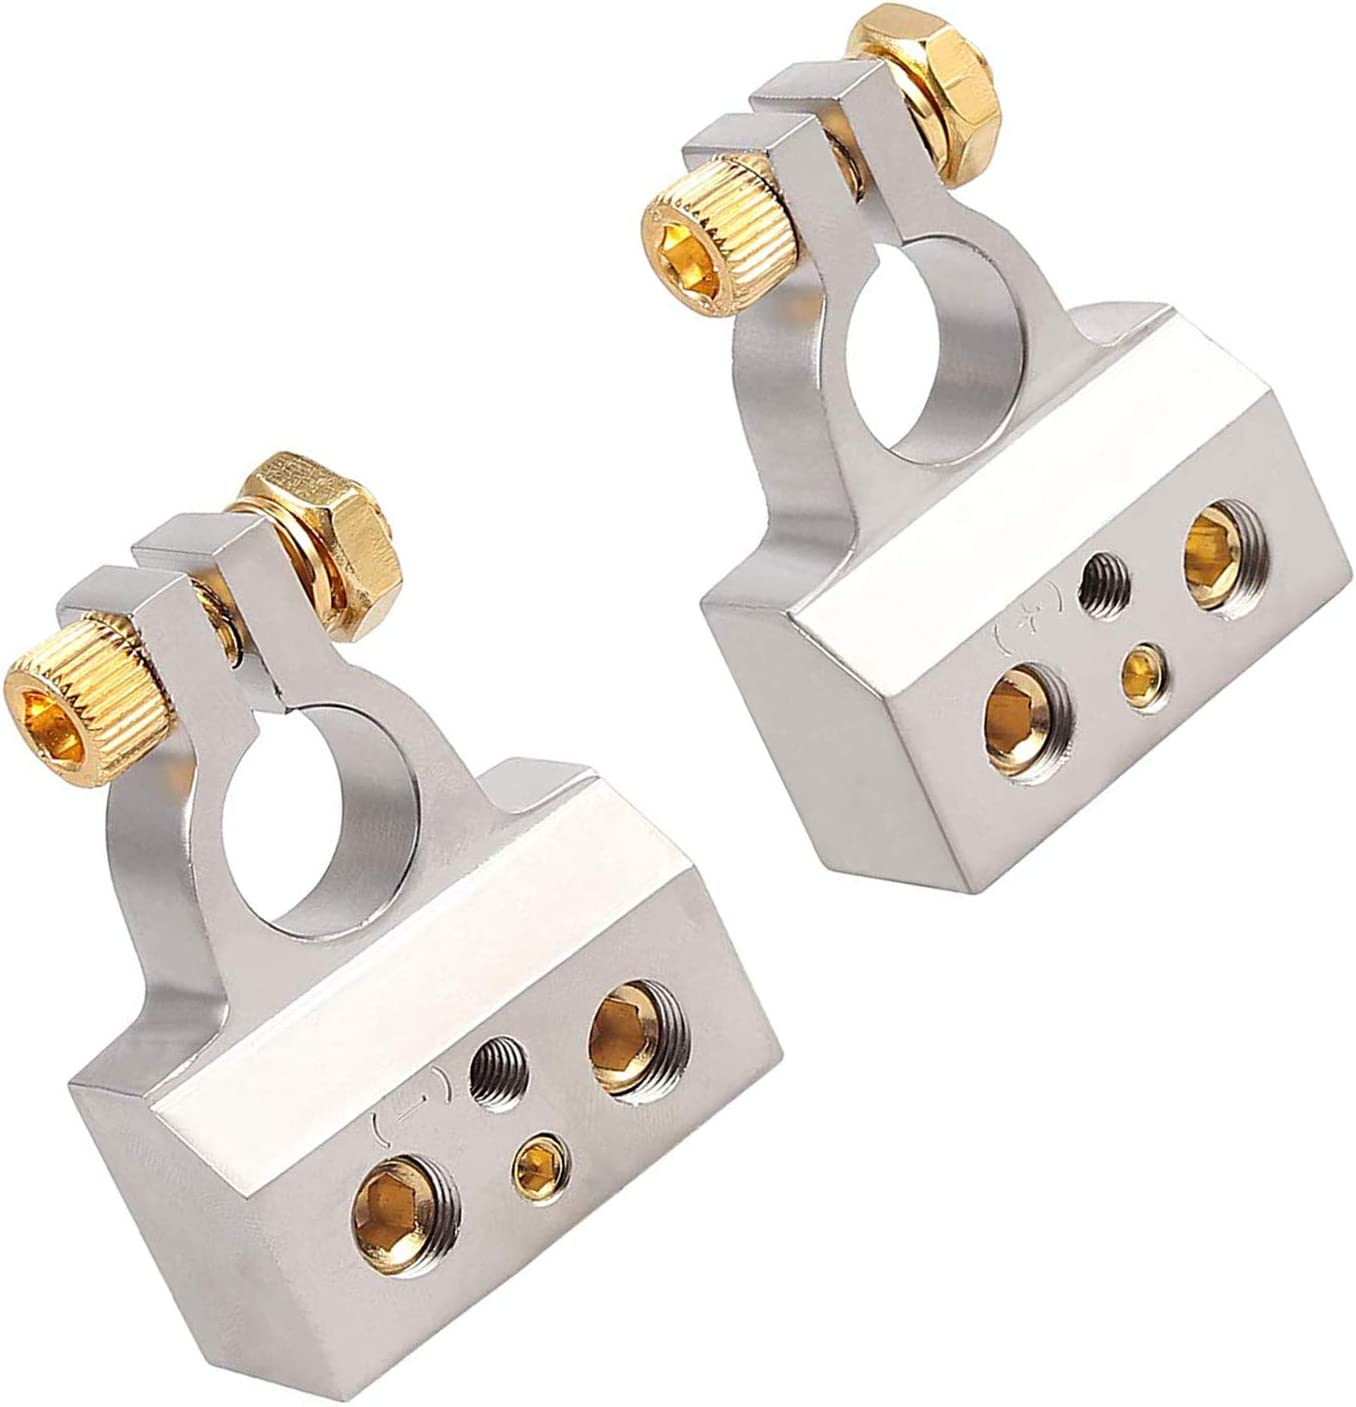 Positive Negative Battery Post Connectors With Clamp and Shims for Auto Car Caravan Marine Boat Motorhome 0//4//8 or 10 Gauge Car Battery Terminal Connectors Kit